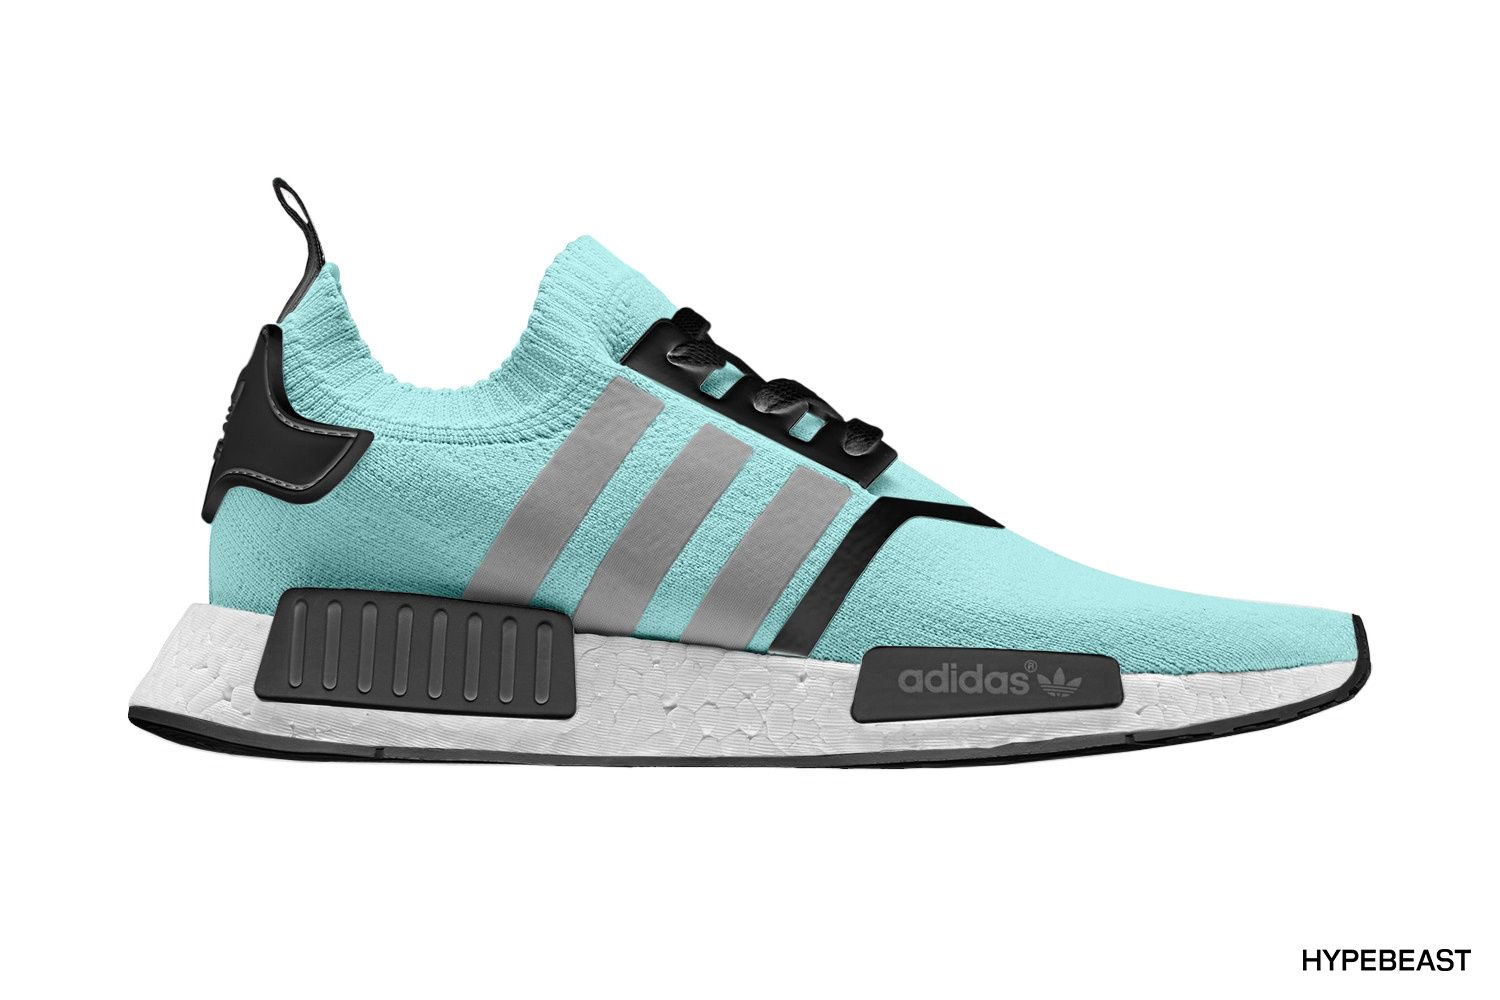 c11e32db6f94e 8 adidas NMD Collaboration Concepts We Want Actualized